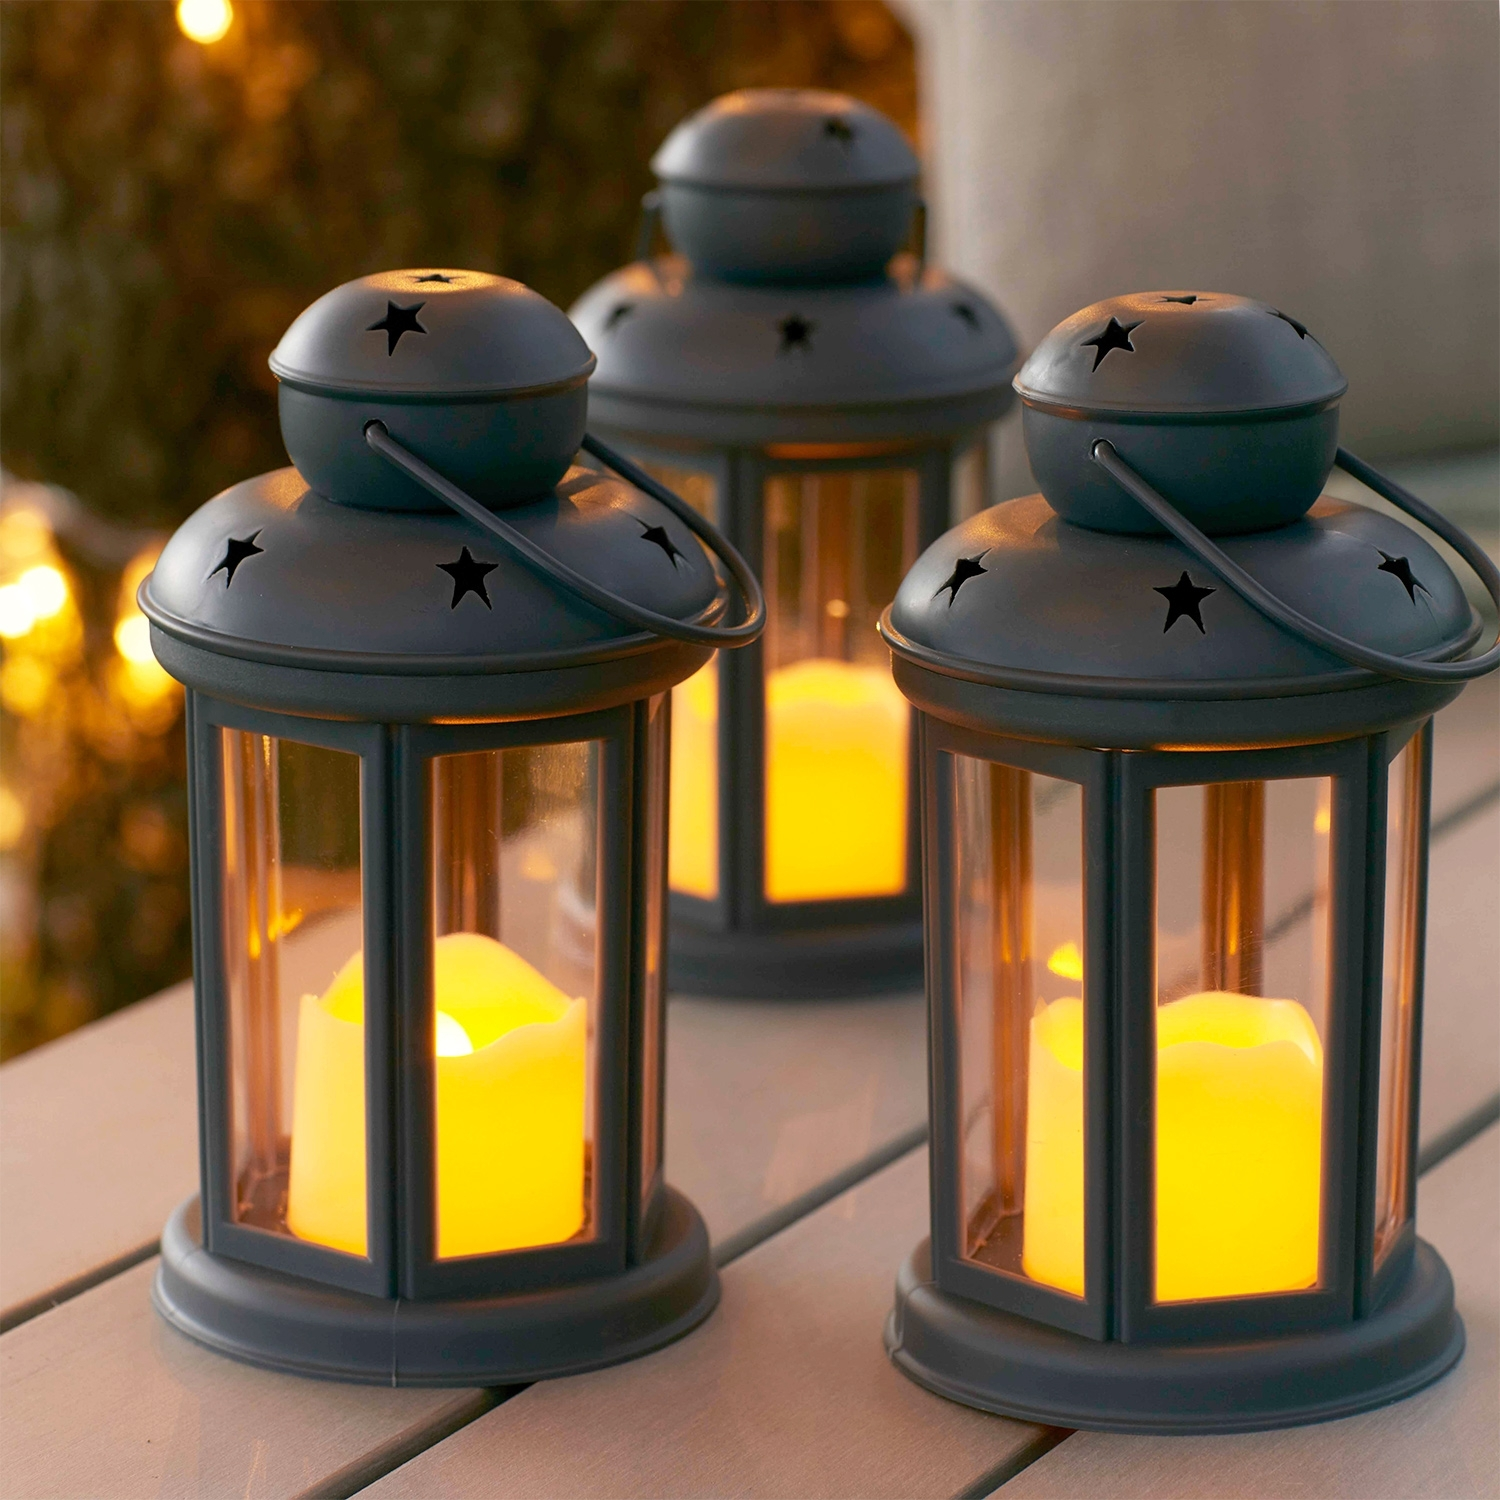 Set Of 3 Grey Battery Operated Led Indoor Outdoor Flameless Candle Intended For Set Of 3 Outdoor Lanterns (View 17 of 20)